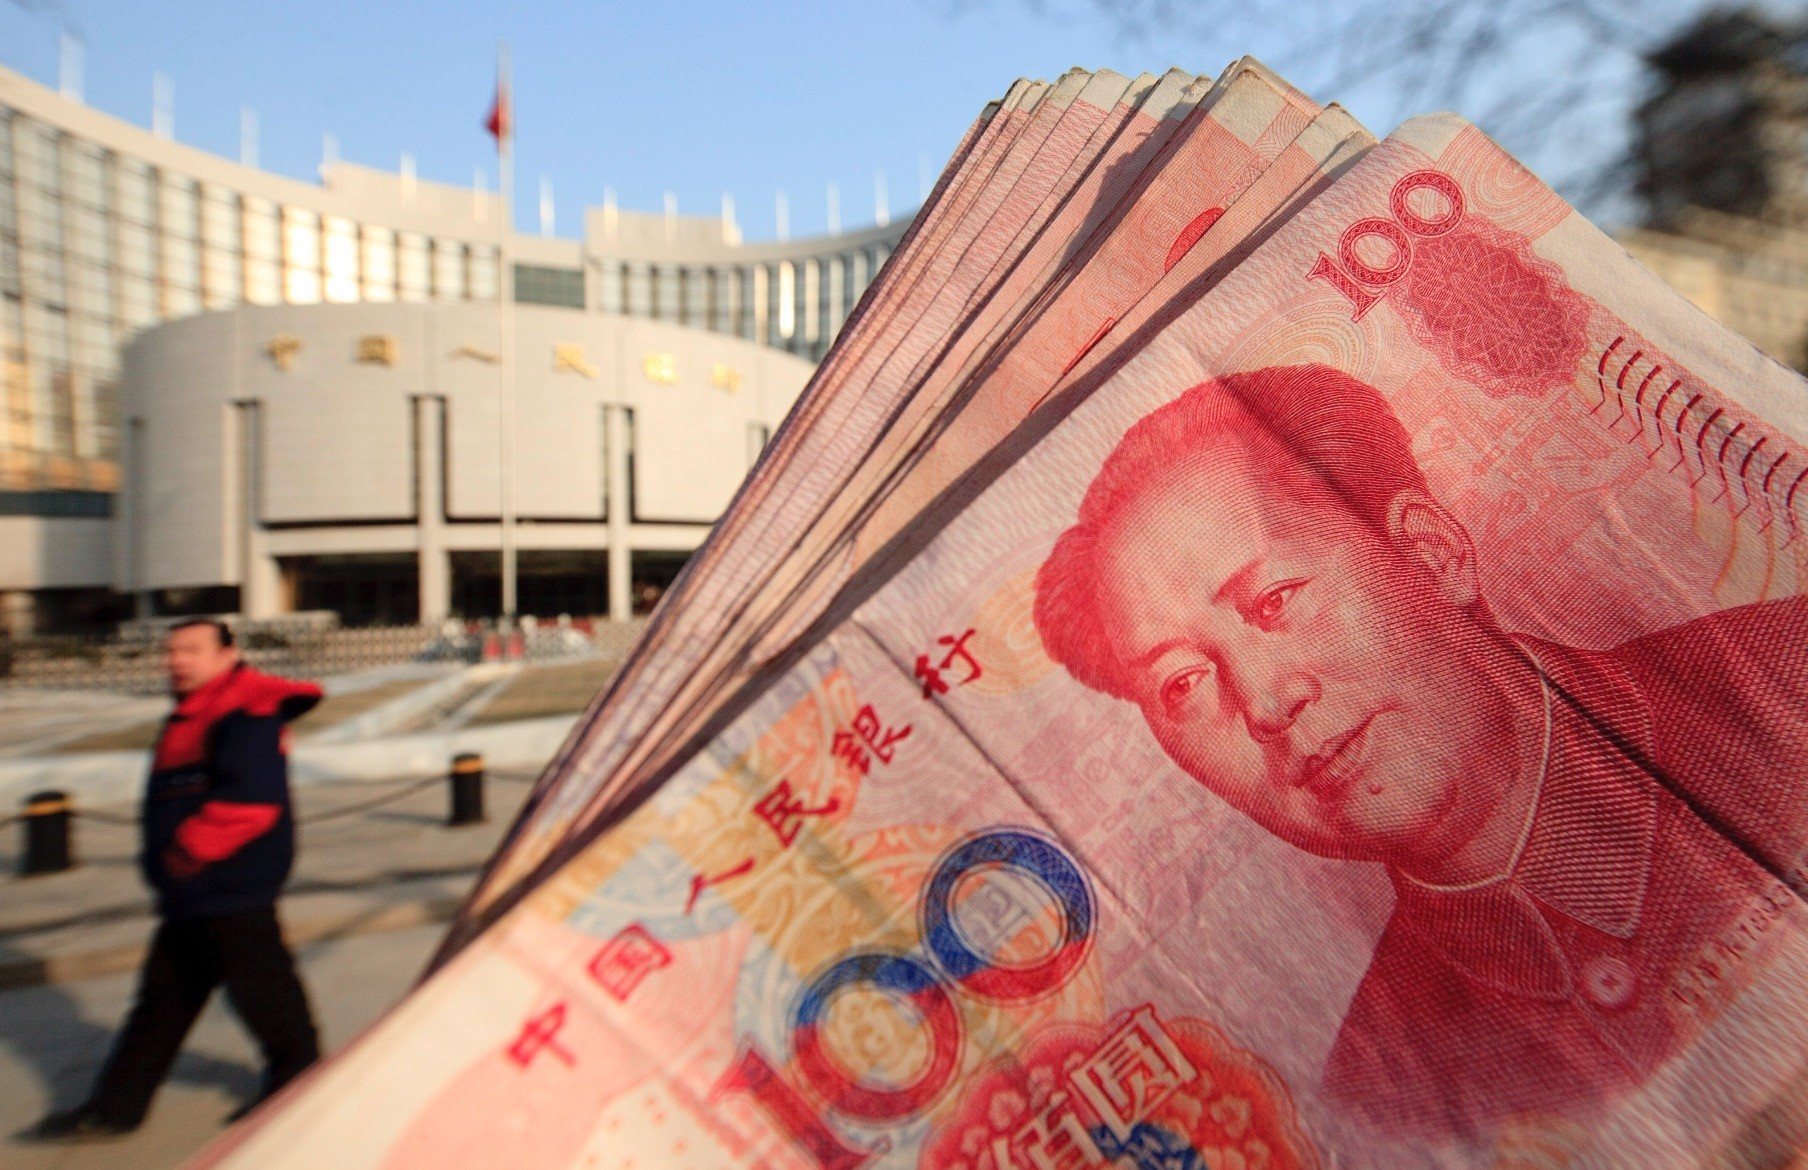 Renminbi banknotes and the headquarters of the Peopleu2019s Bank of China (PBOC) in central Beijing.